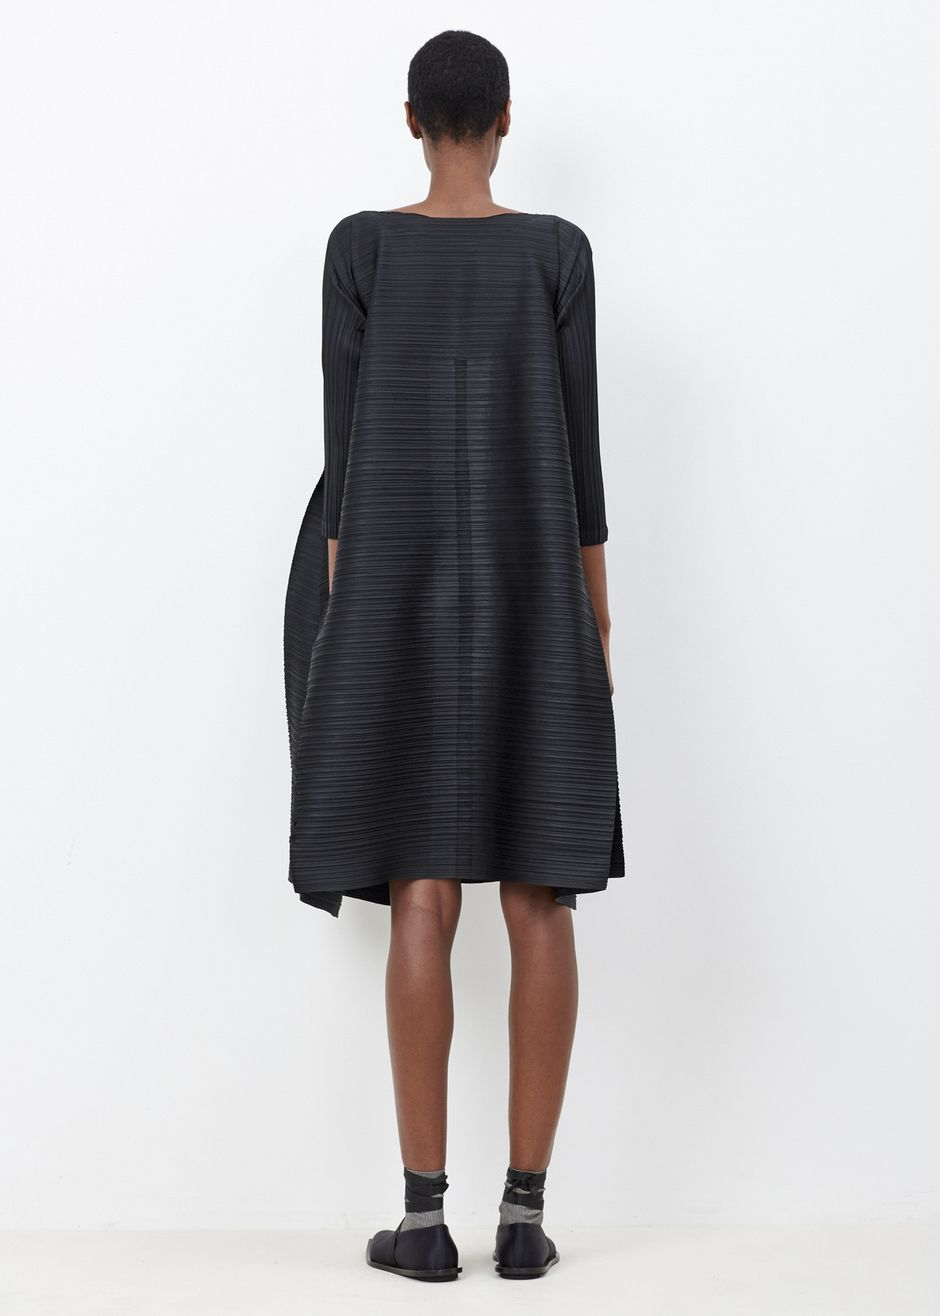 b60618dcfea25 Issey Miyake PLEATS PLEASE Edgy Bounce Dress (Black)